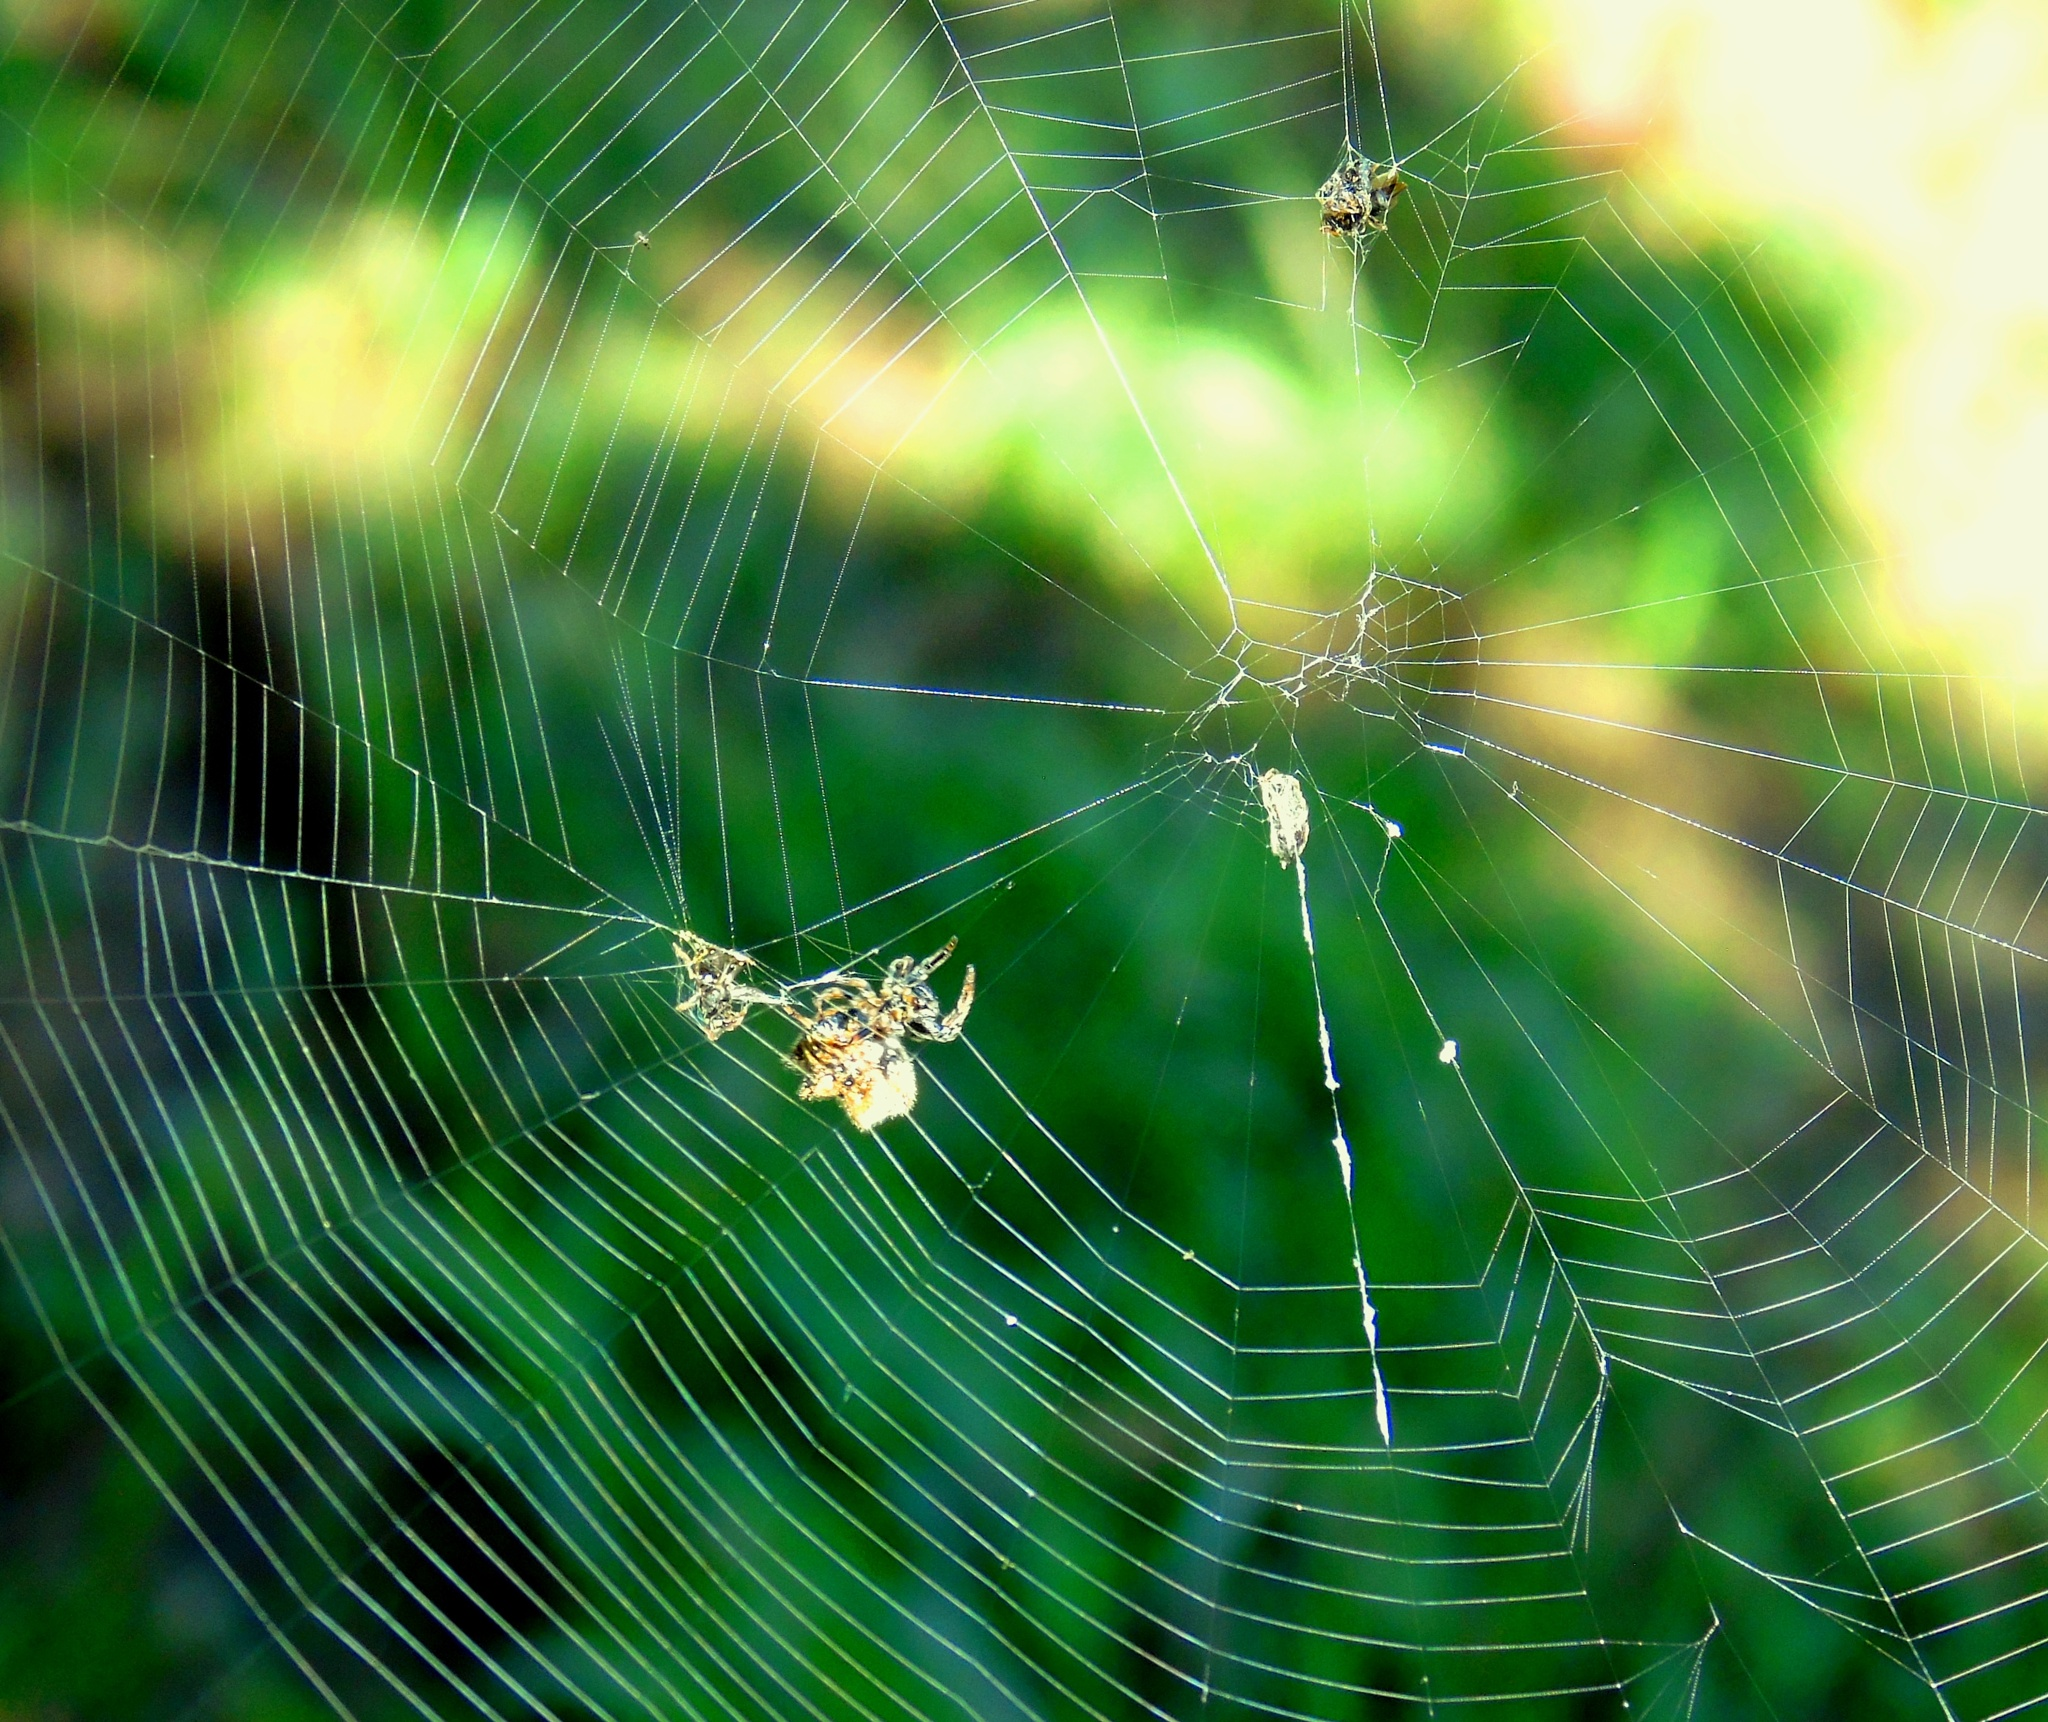 A Spider in Your Beautiful Work! by Bené Menezes